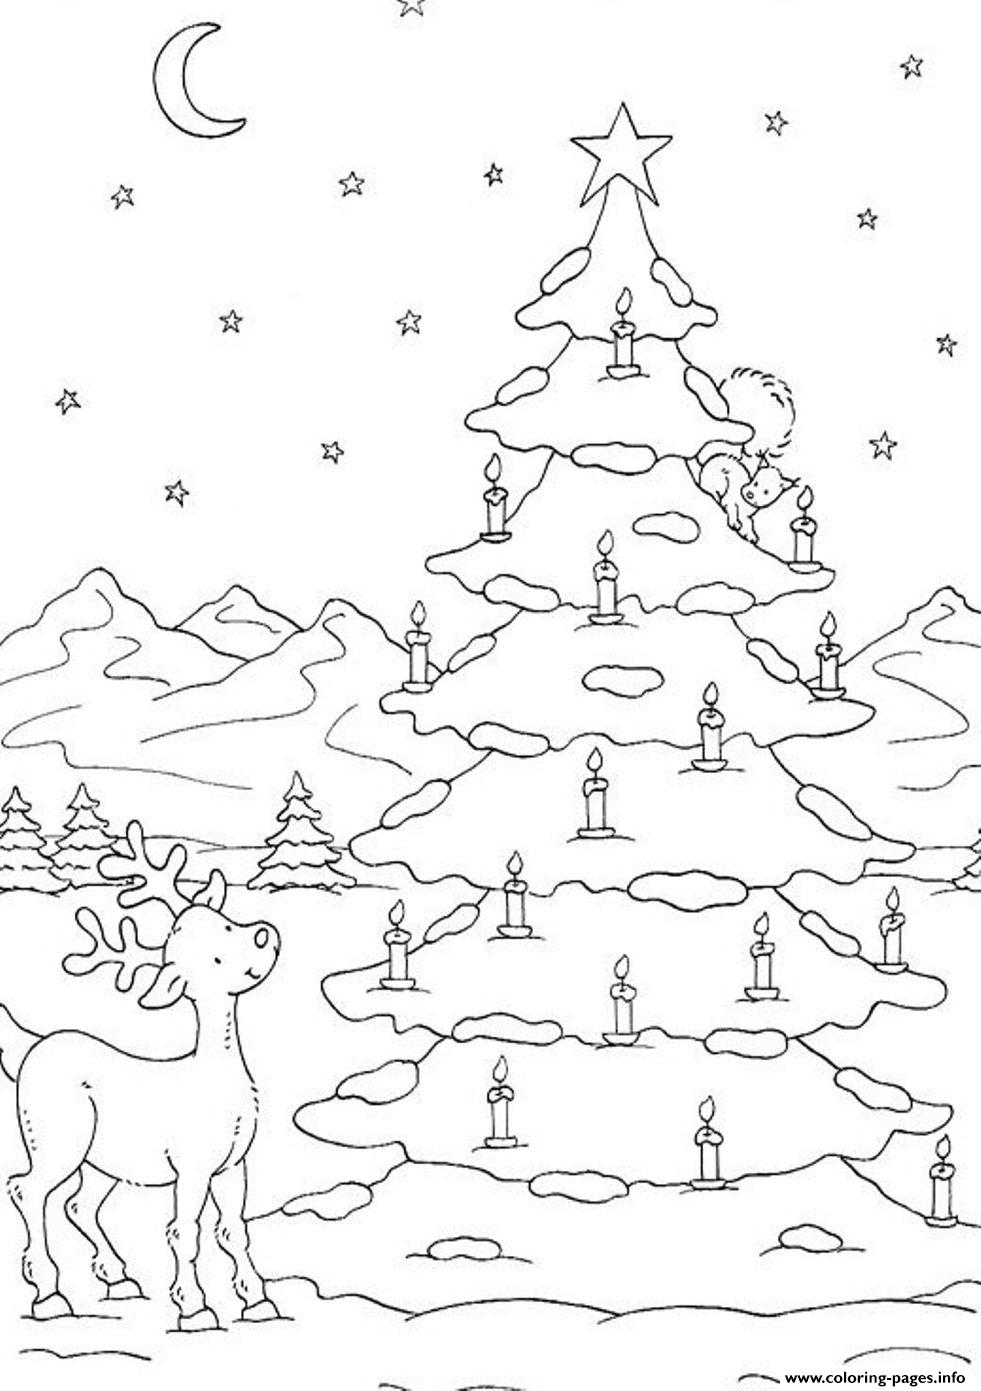 Tree Coloring Pages Printable Free Christmas Trees Sheets – youii | 1391x981